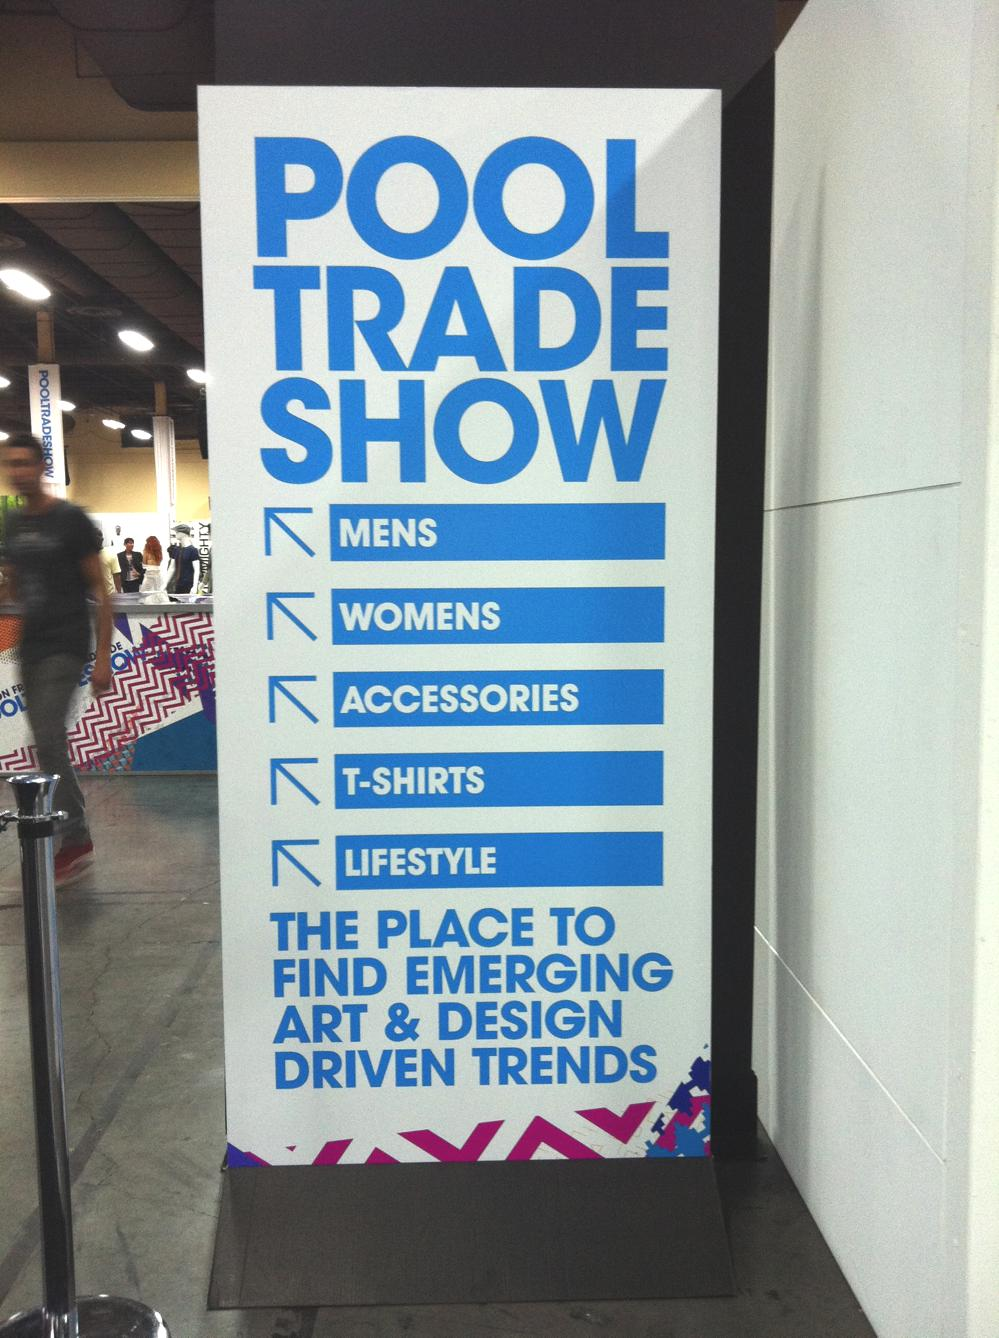 Always on the hunt apparel trade shows las vegas a roundup for Pool trade show vegas